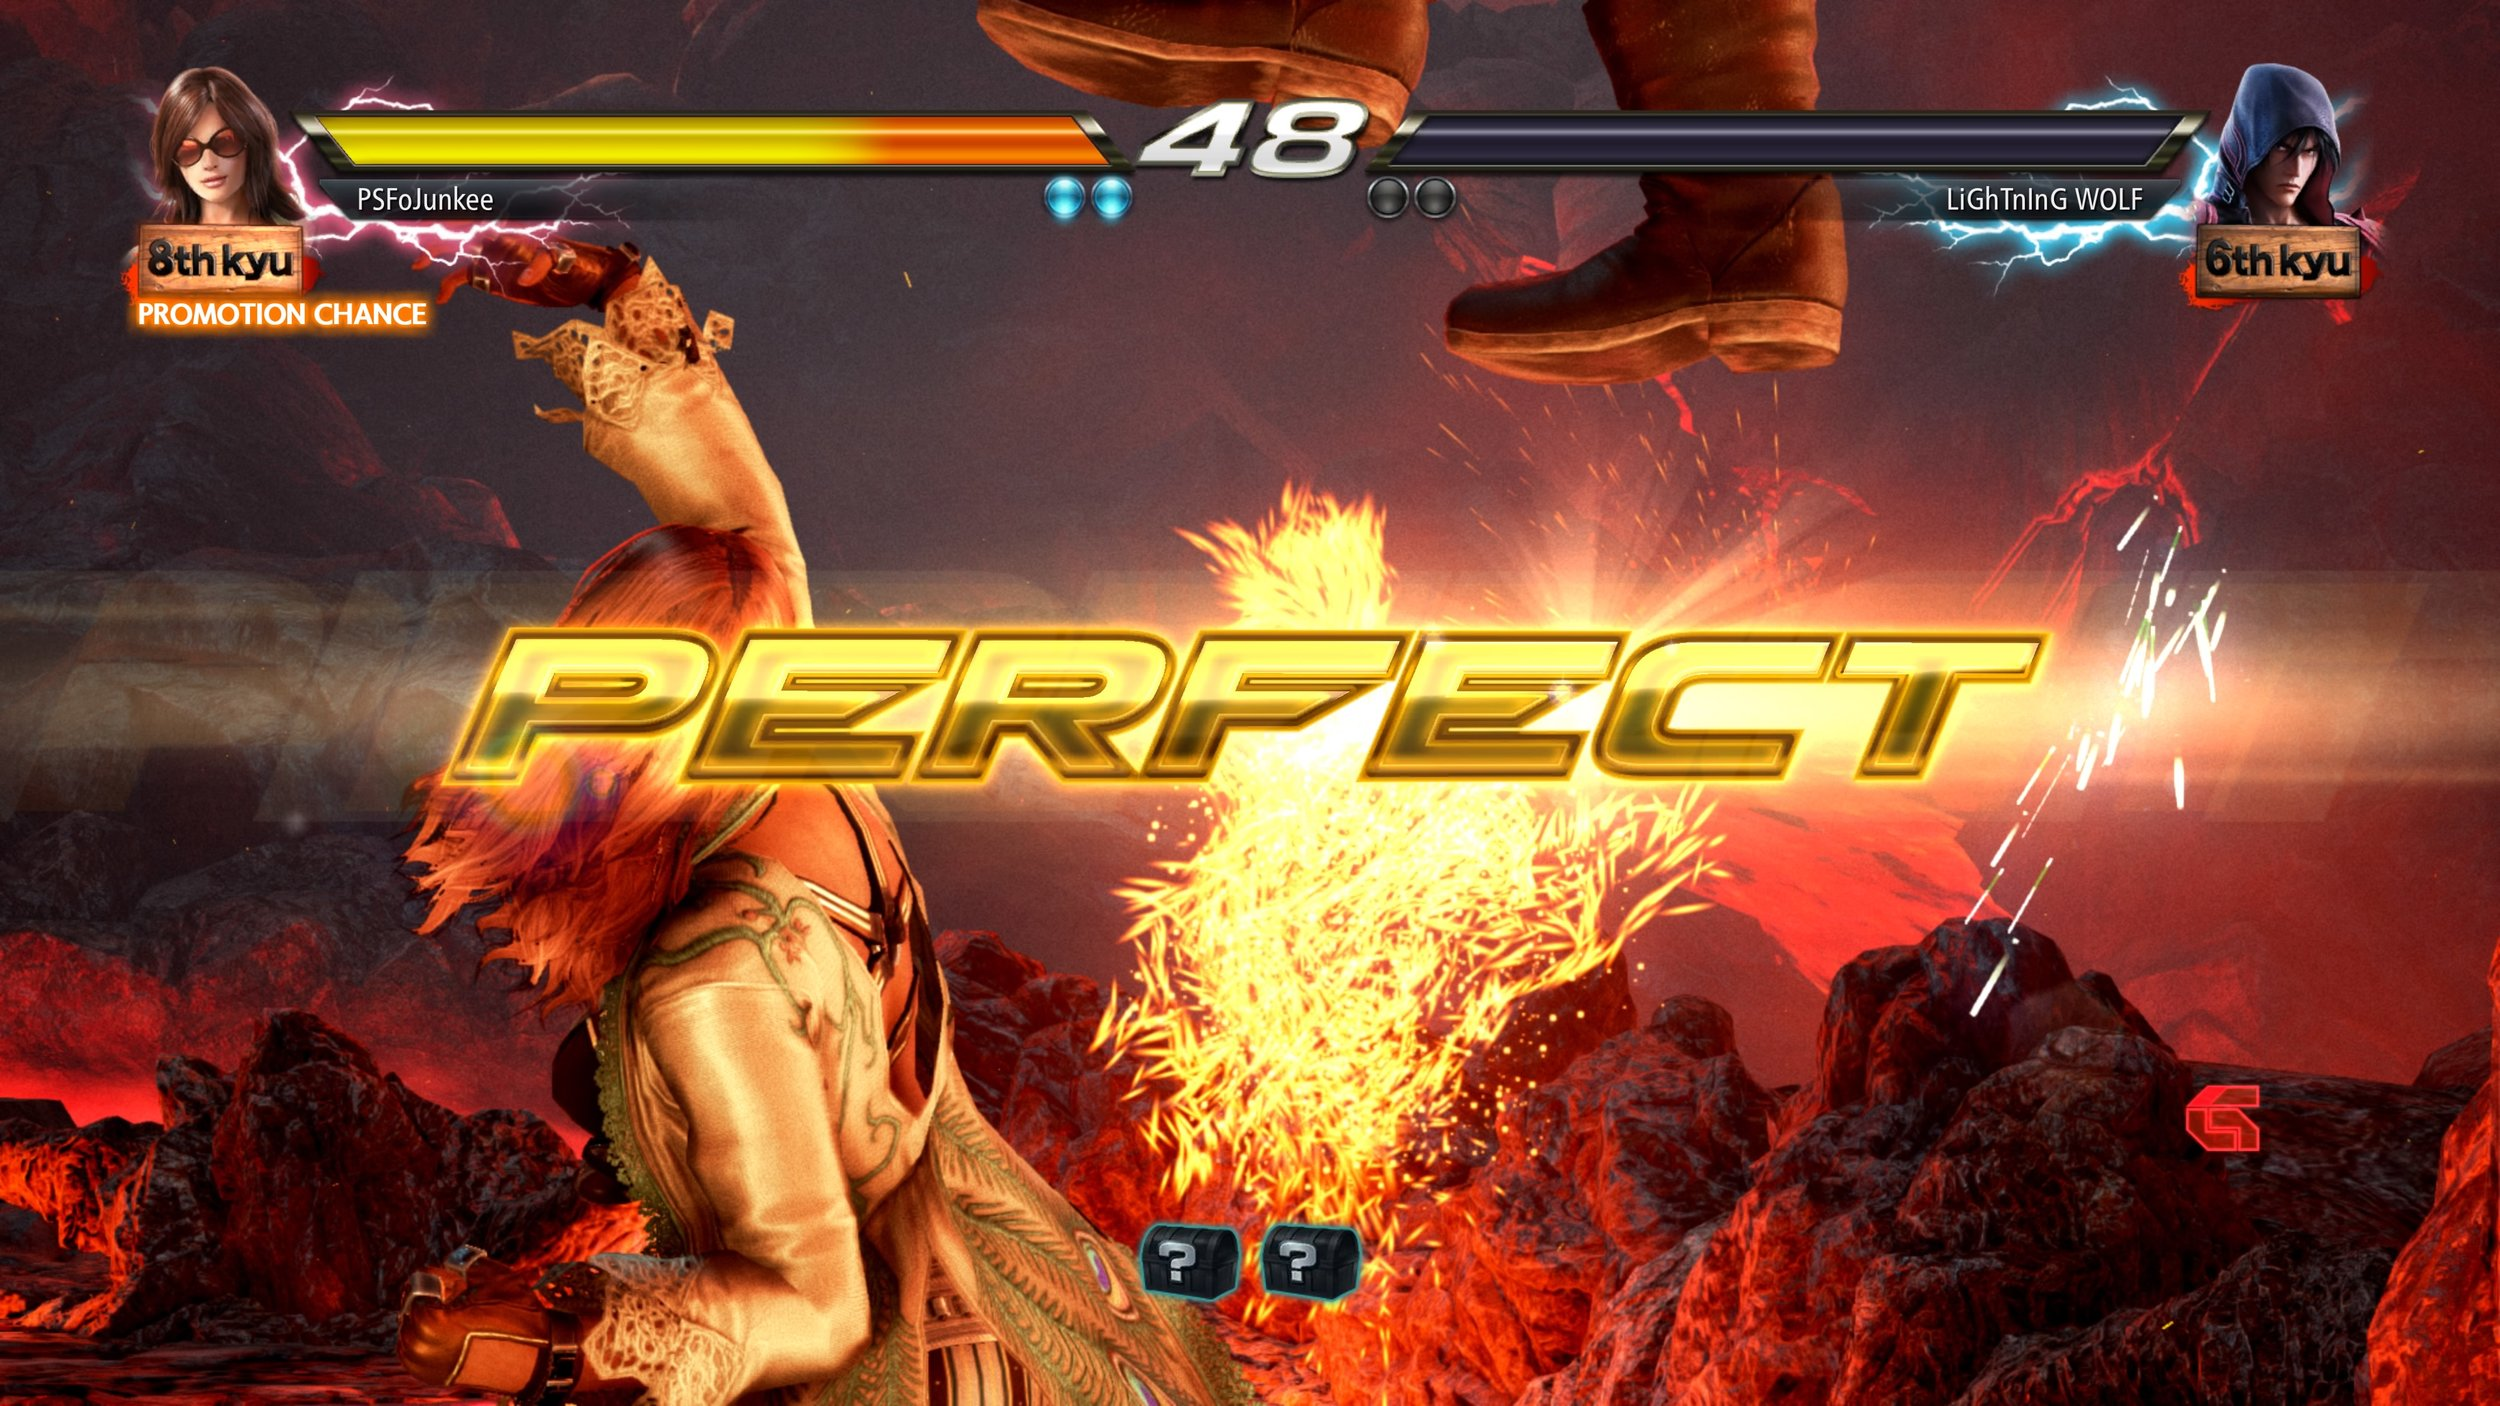 Review: TEKKEN 7 Delivers For Both Veterans and Newcomers